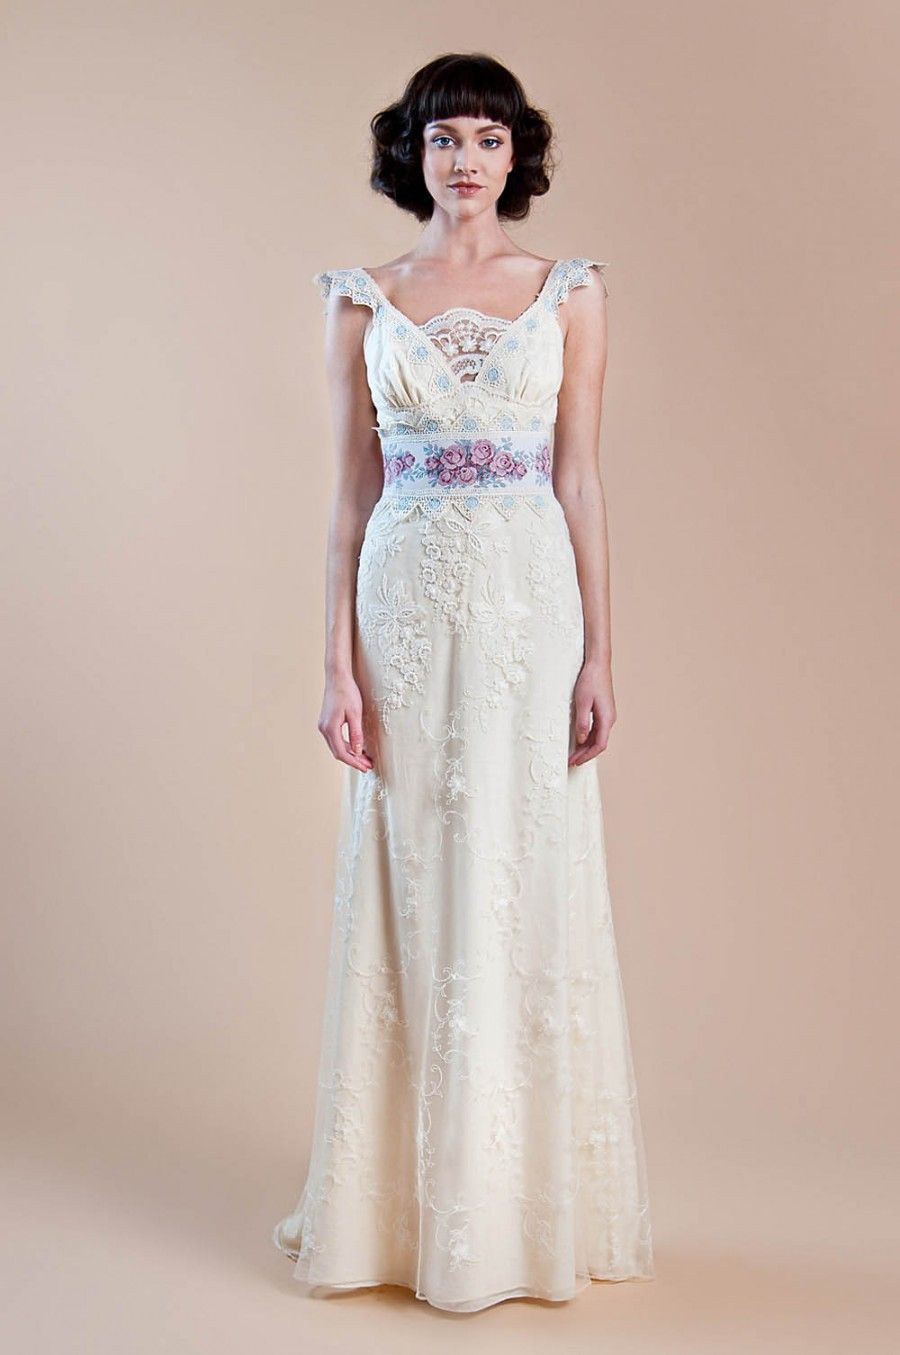 Michal negrin wedding dress  Weddbook  Ivory embroided vintage gown with floral jacquard